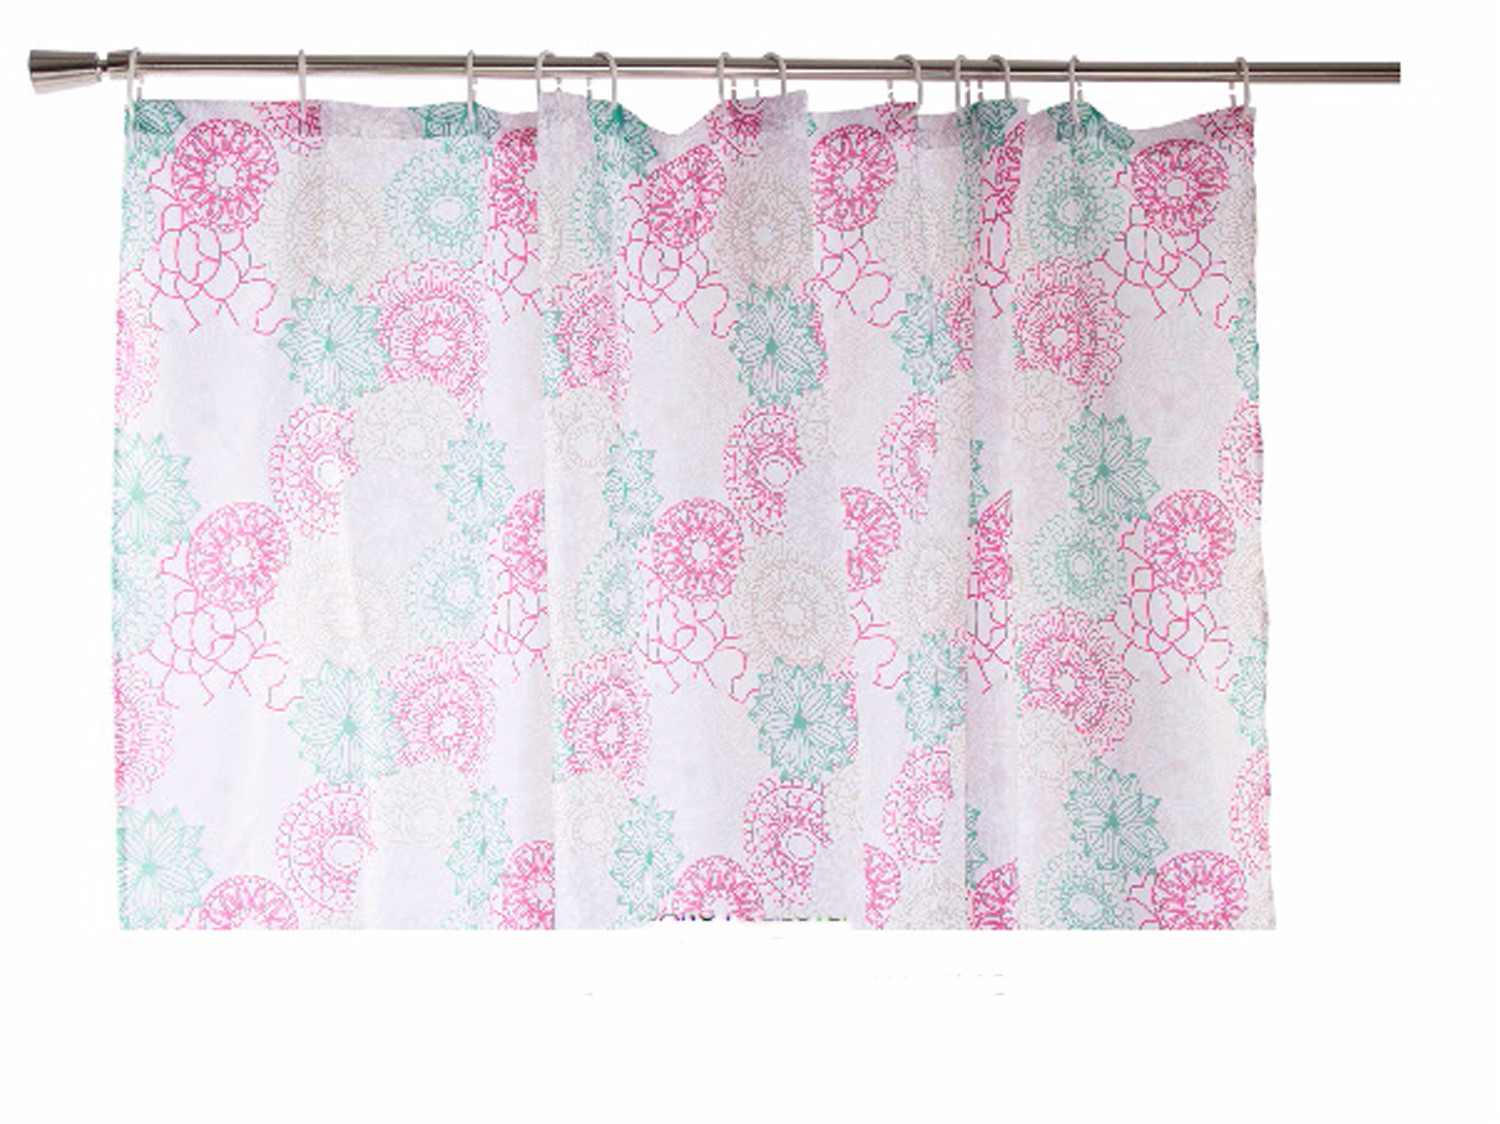 Shower curtain made of polyester mandalas